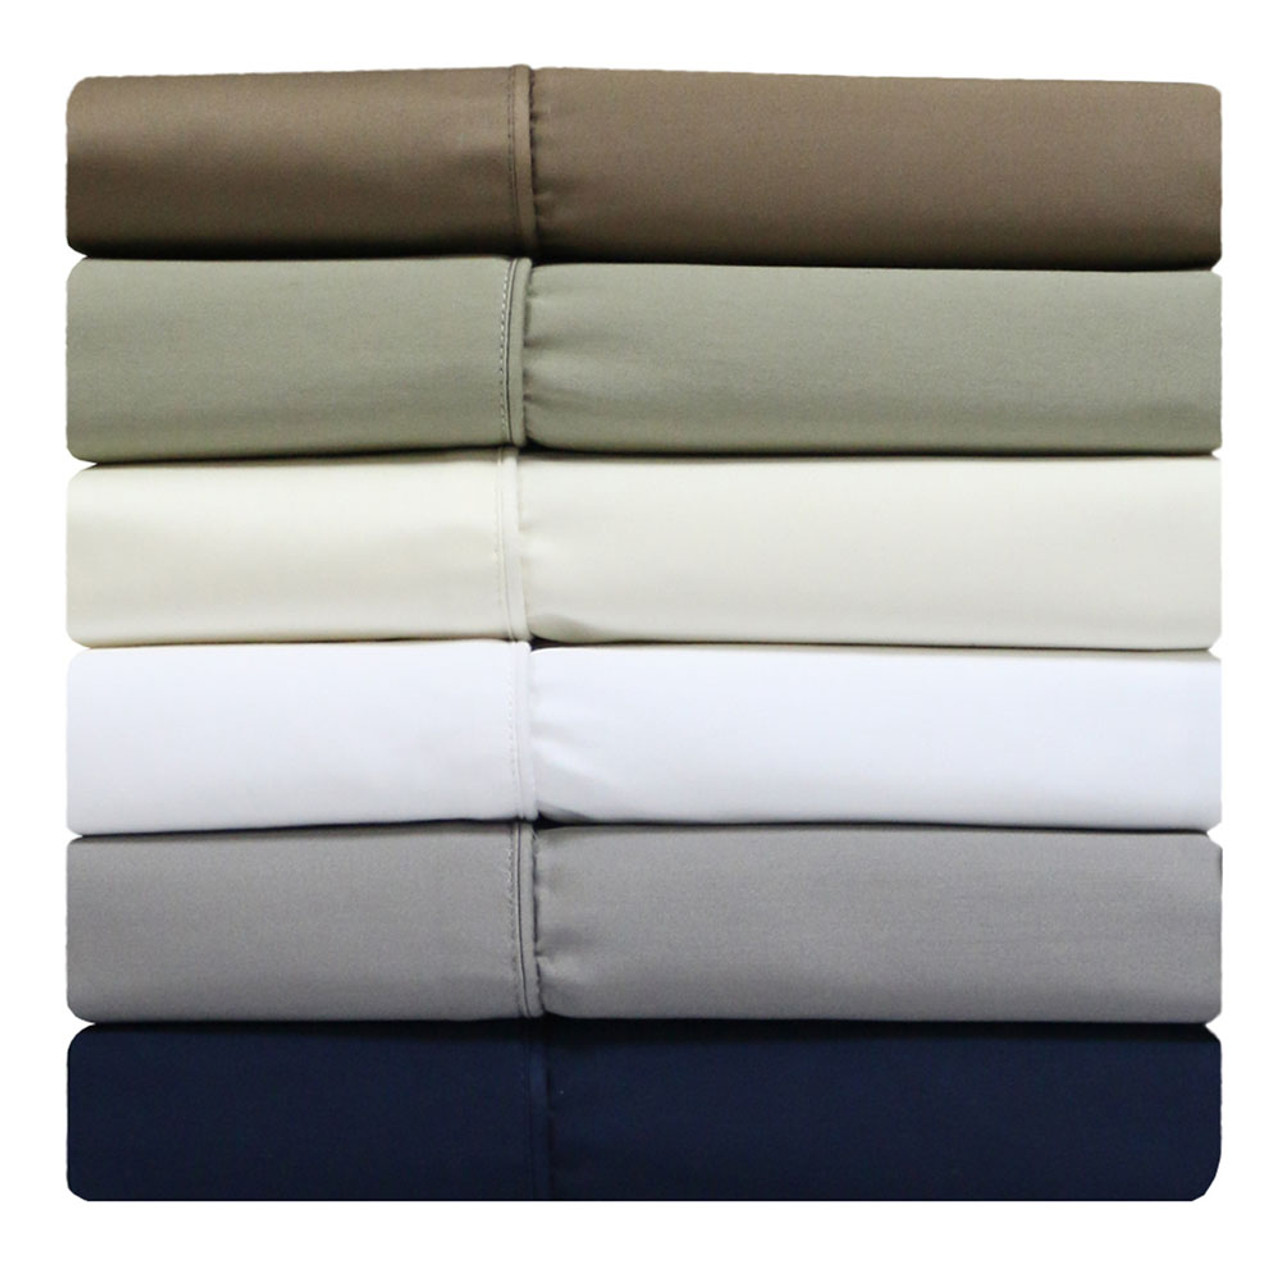 Split Top King Sheets For Spli Top Adjustable King Mattress